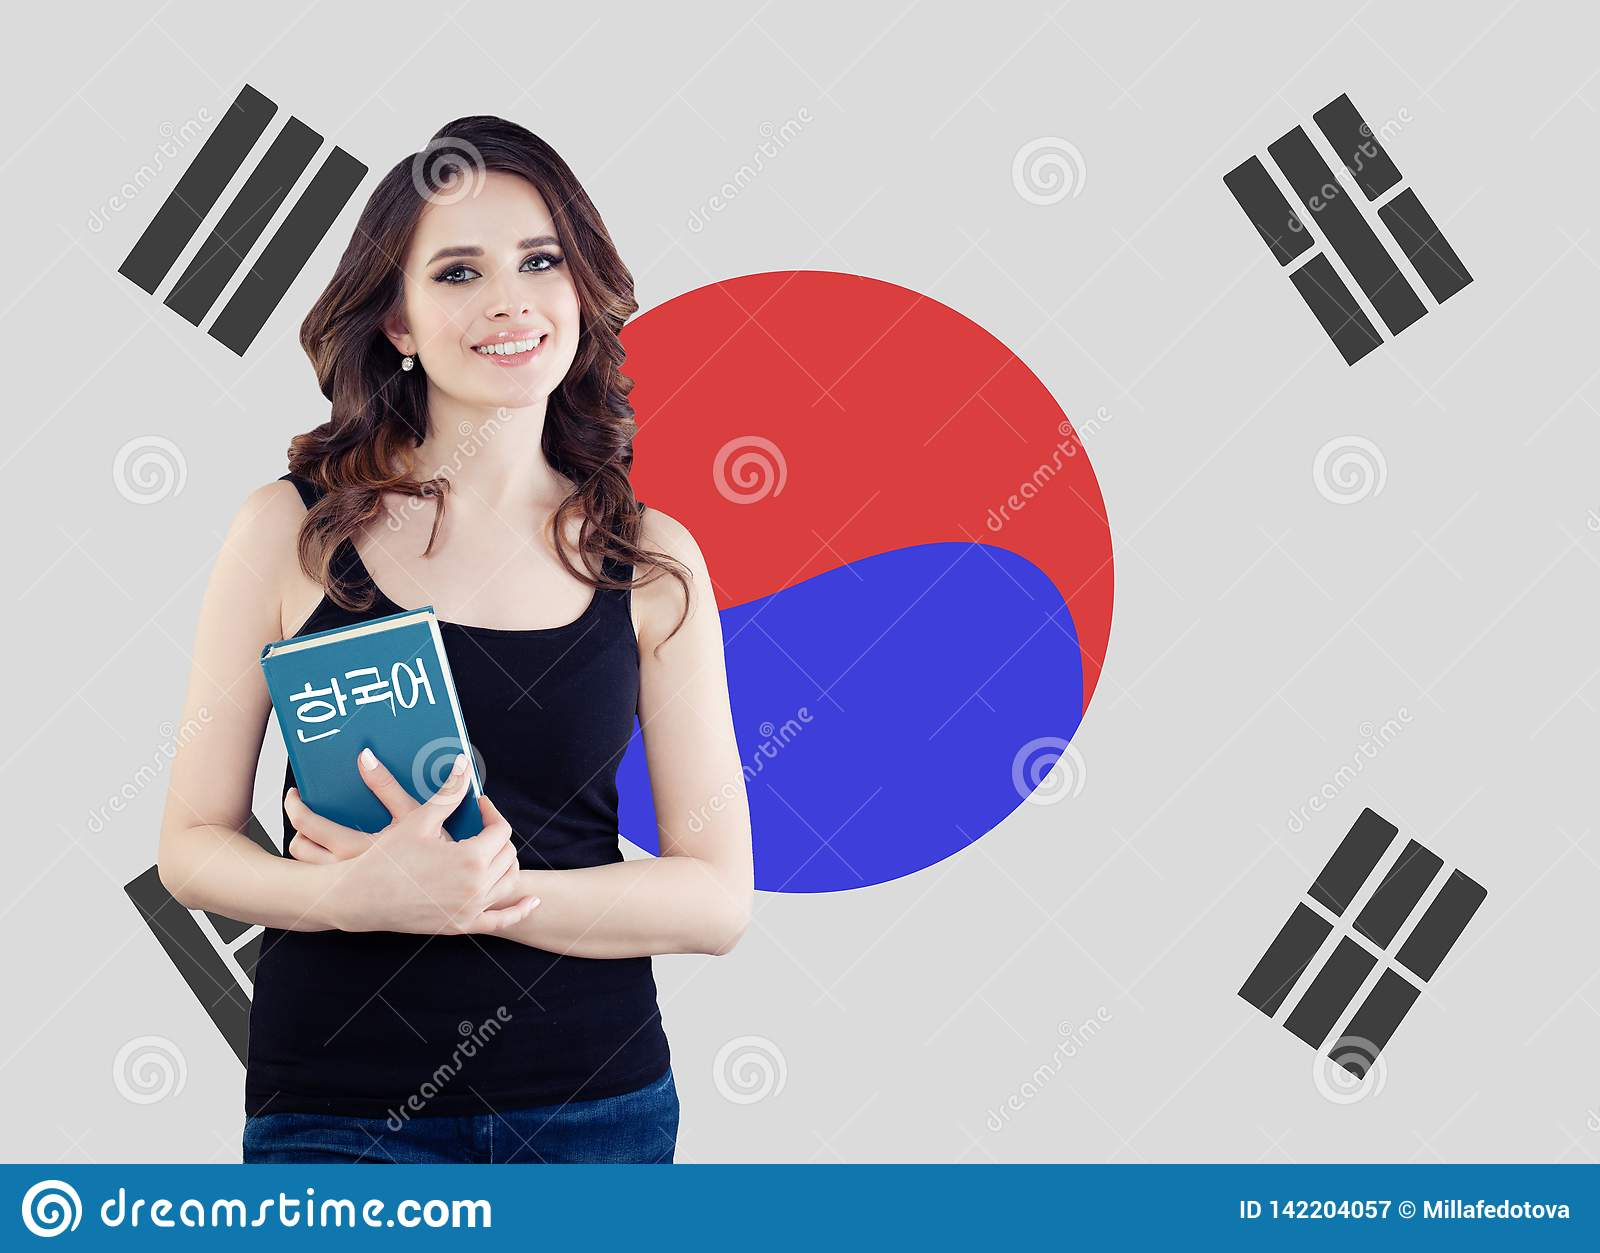 Learn korean language. Pretty young woman student with book against the South Korea flag background